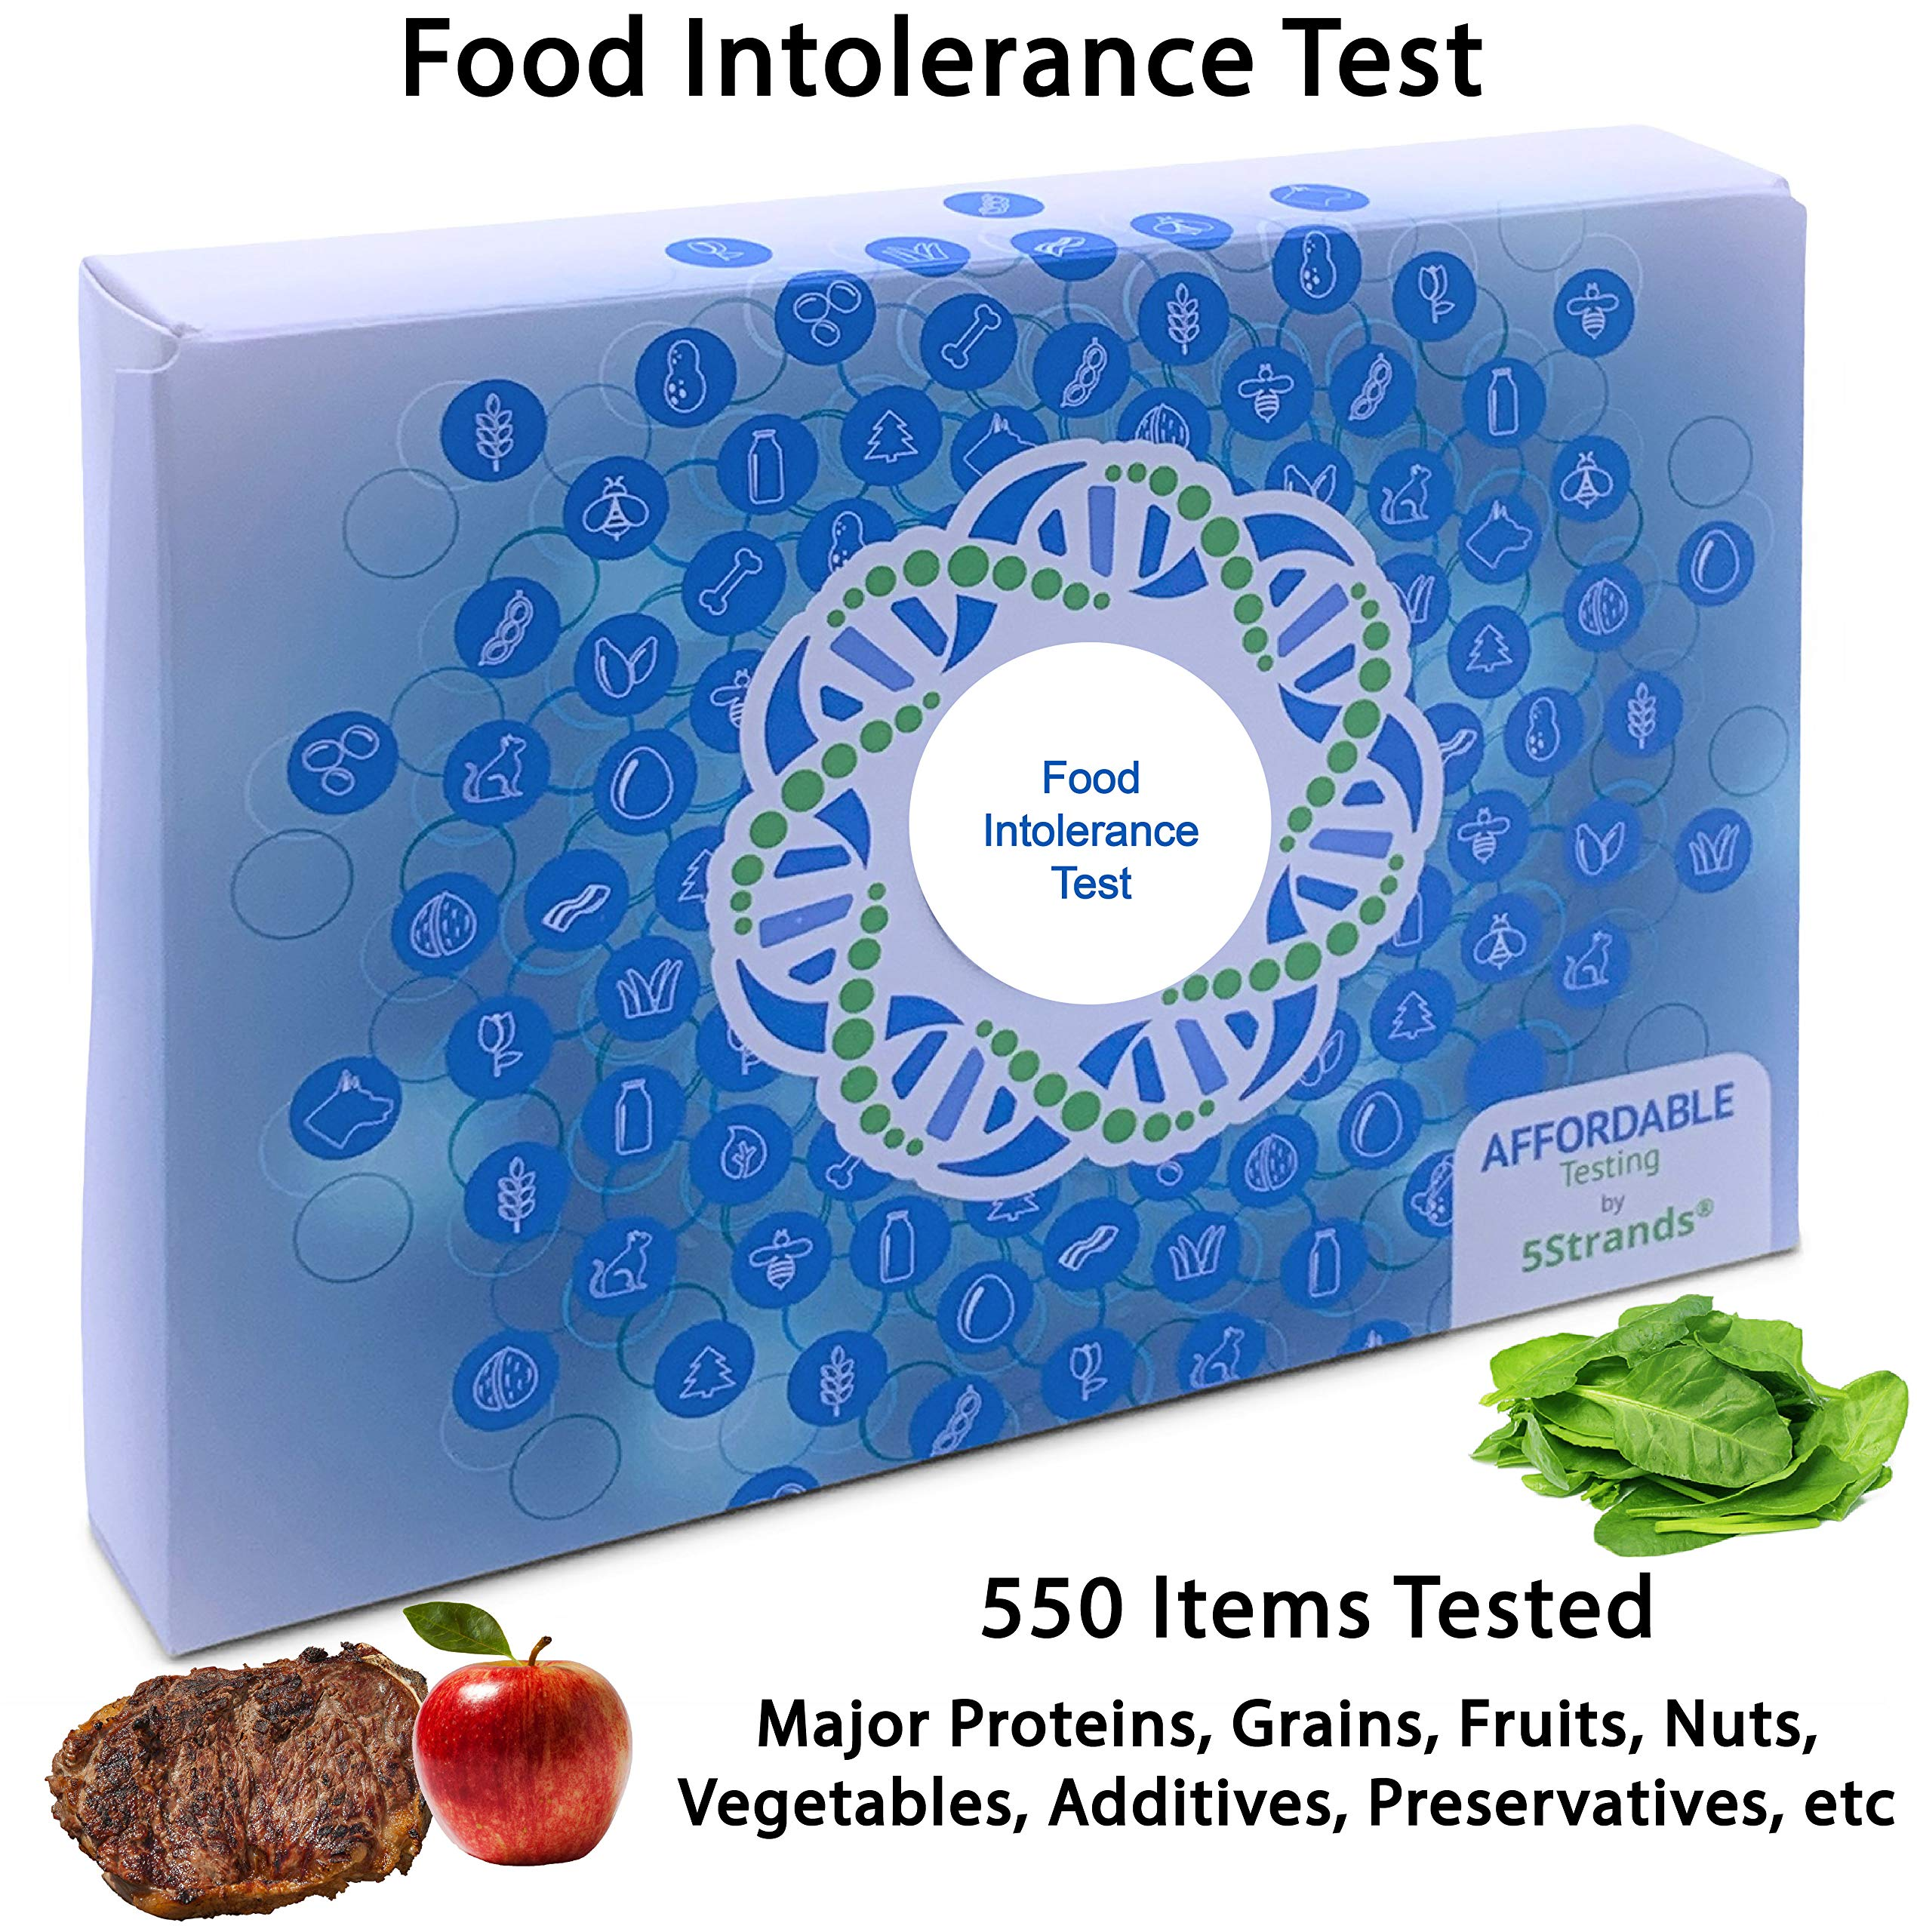 5Strands | Affordable Testing | Food Intolerance Test | at Home Hair Analysis Kit | Tests 550 Items | Protein, Gluten, Soy, Lactose, Preservatives, | Results 7-10 Days by 5Strands